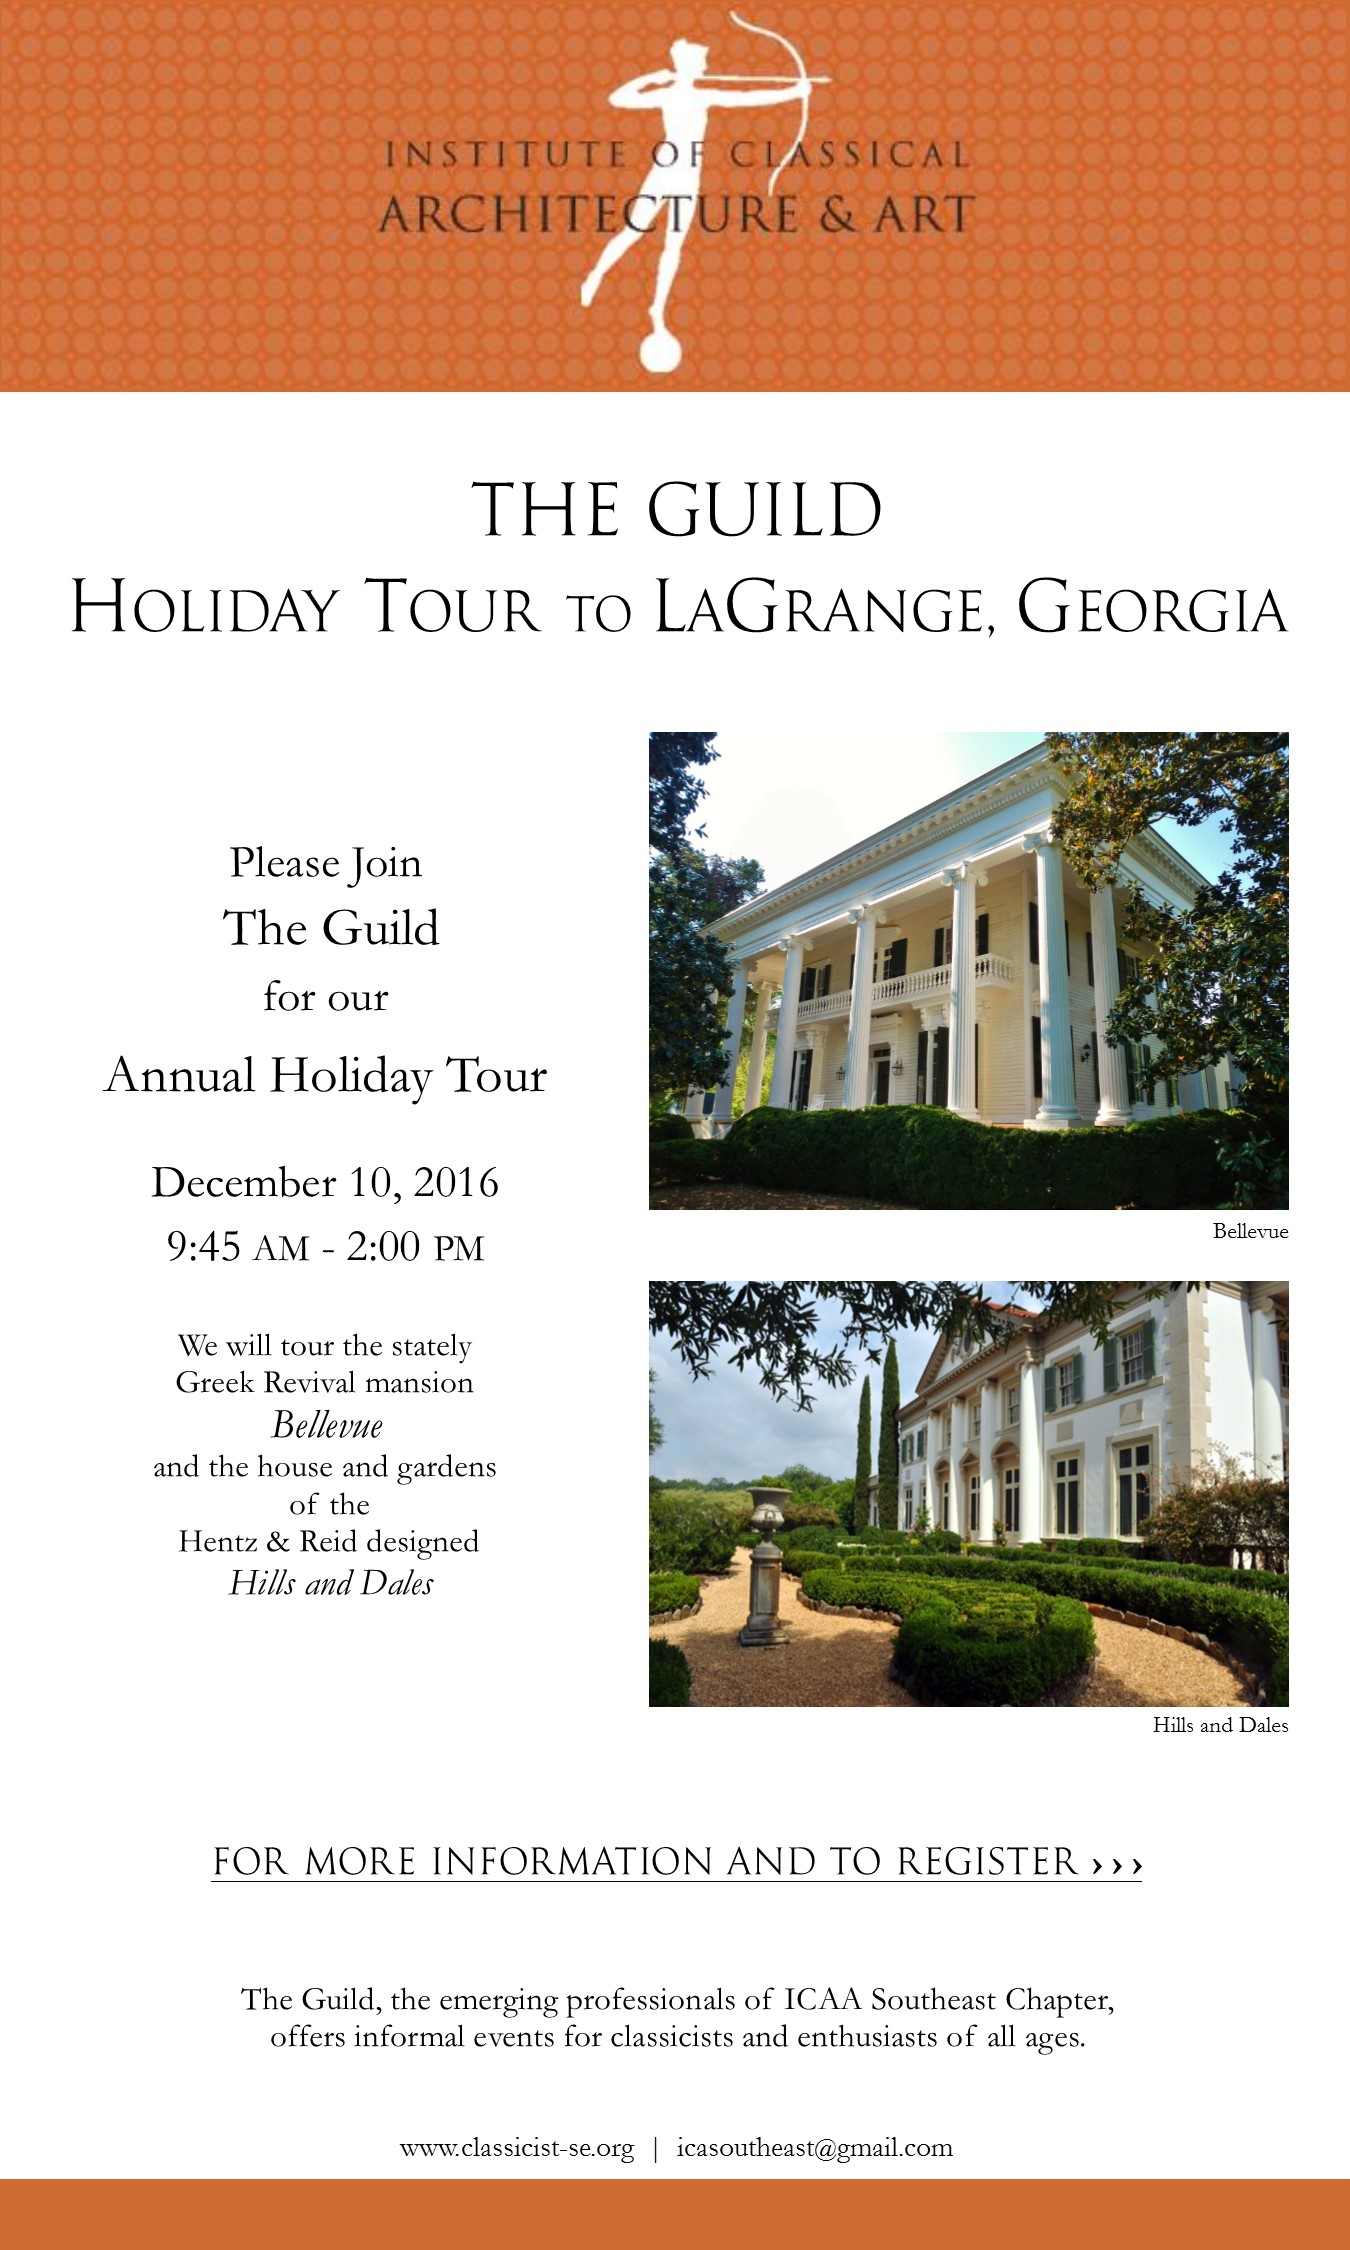 The Guild 2106 Holiday Tour